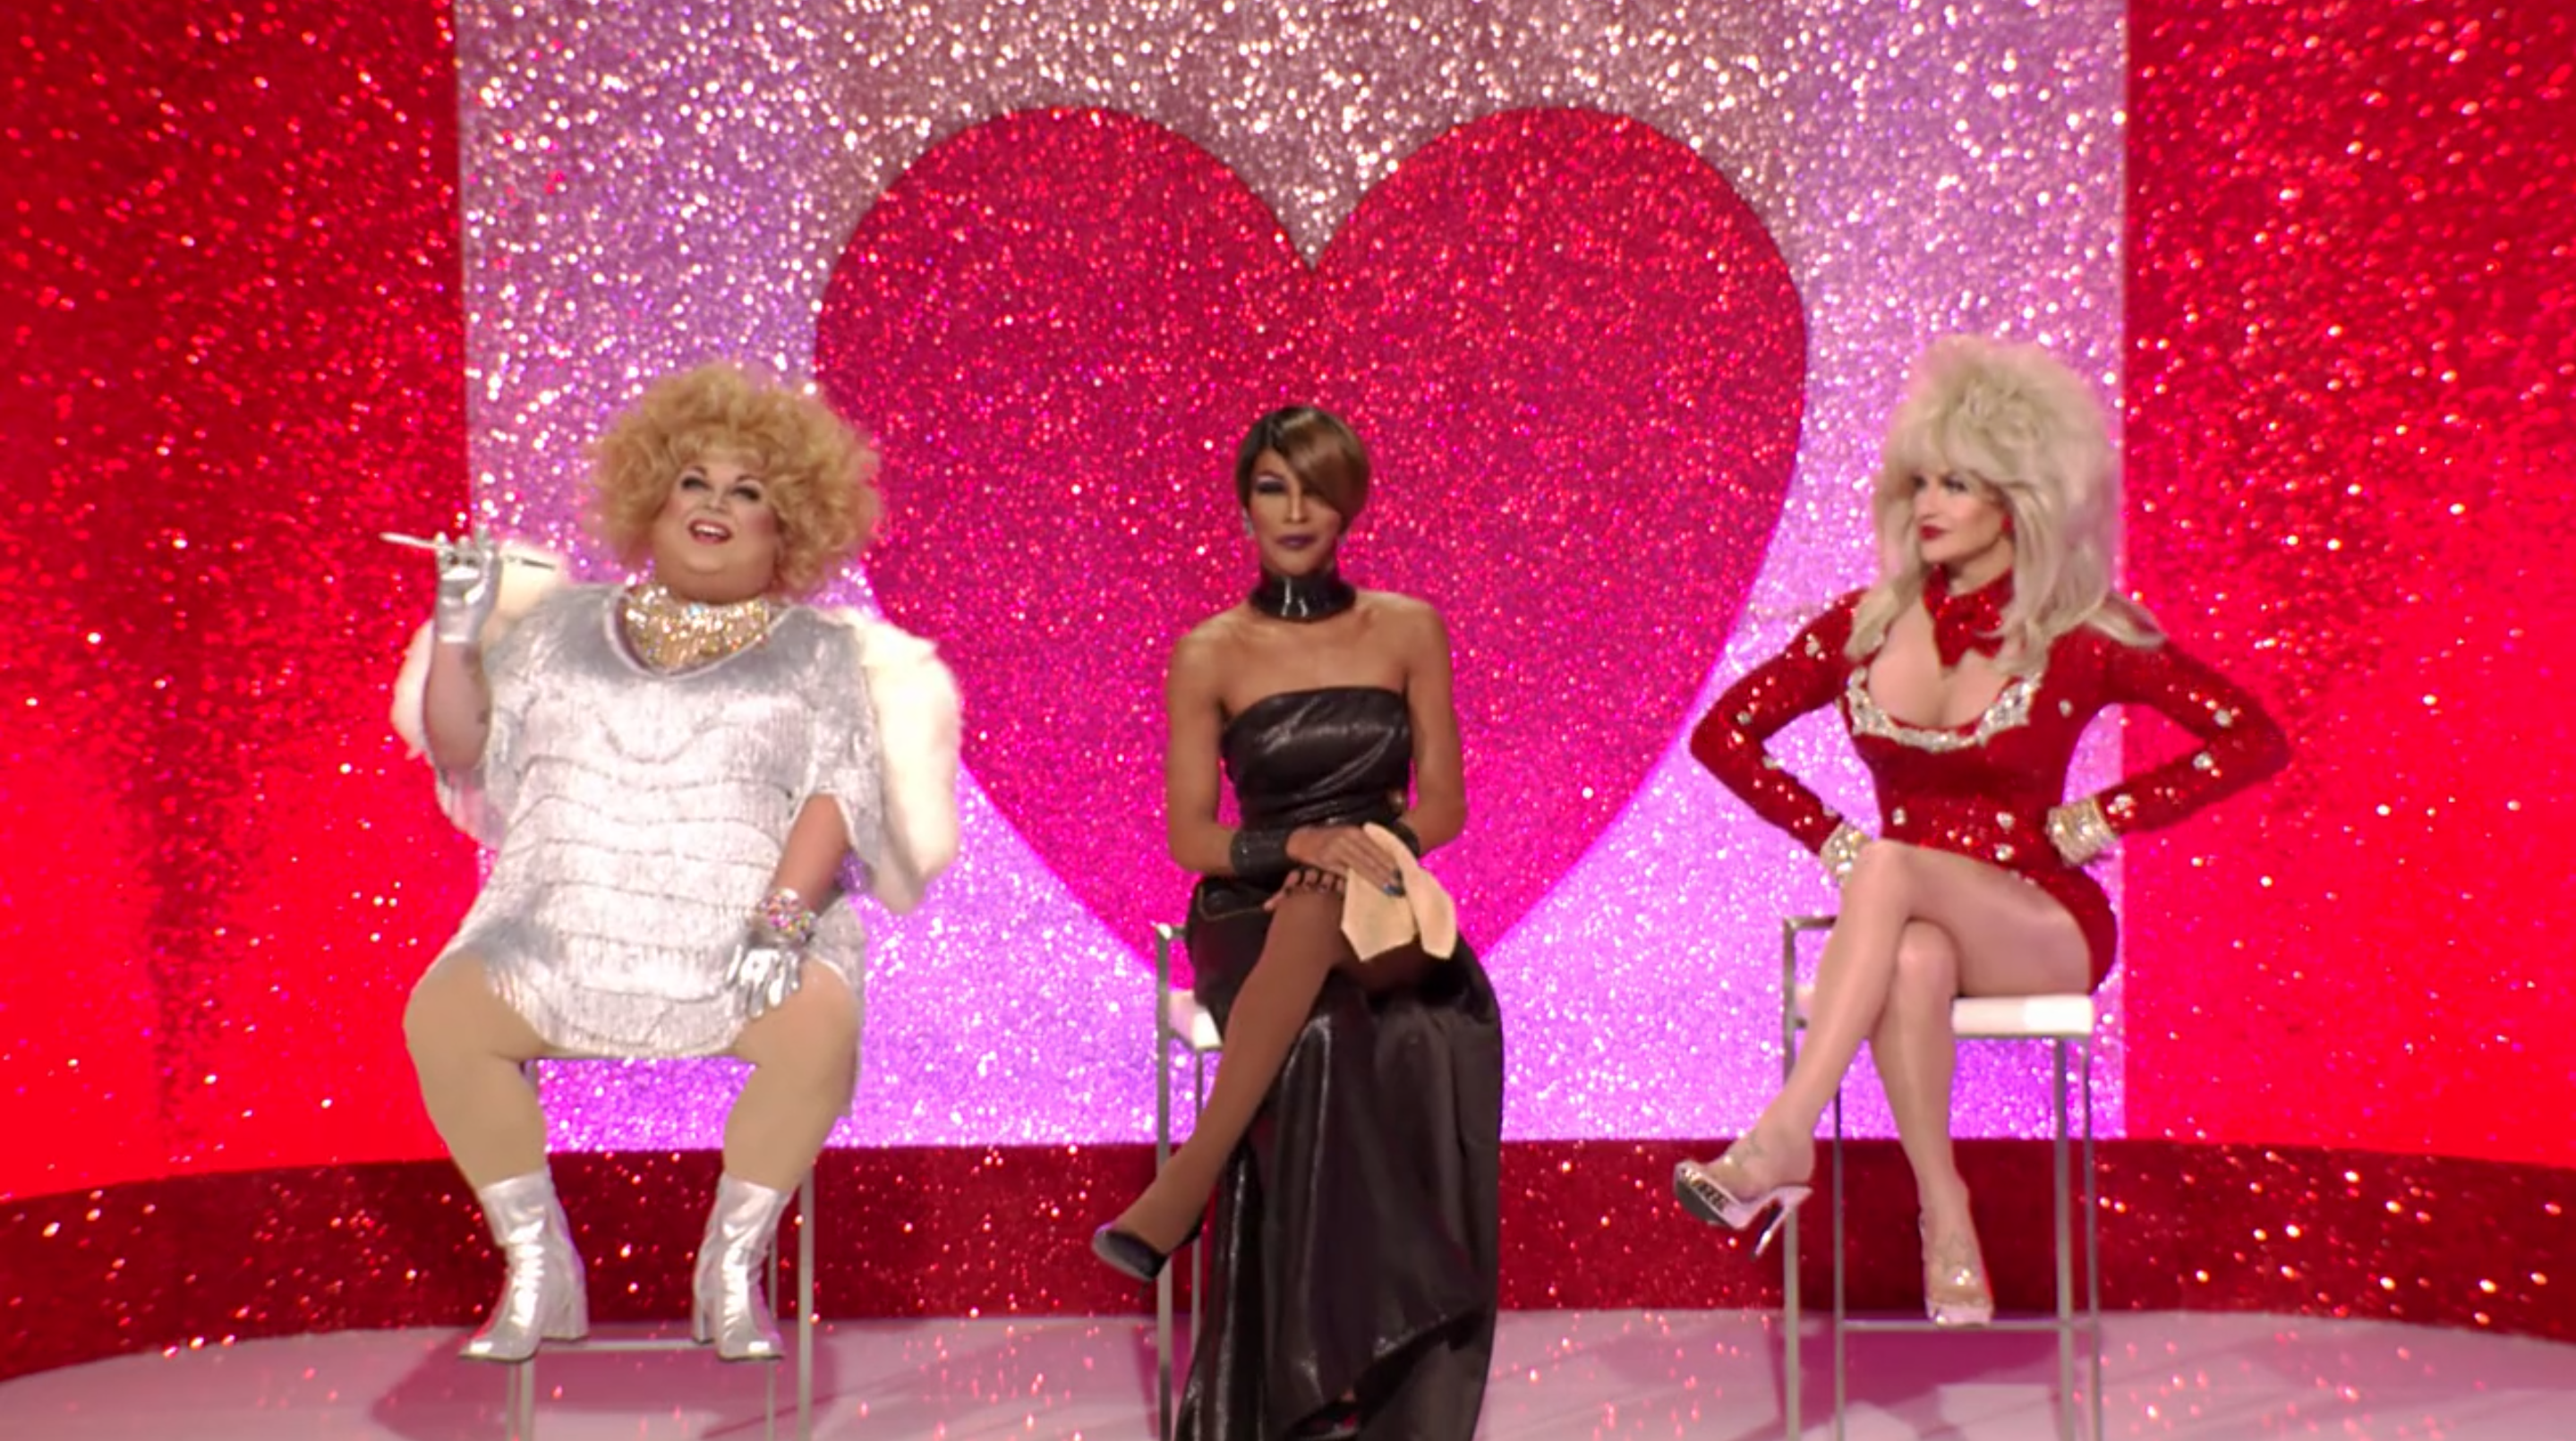 Ginger, Trinity and Kylie in the Snatch Game of Love.